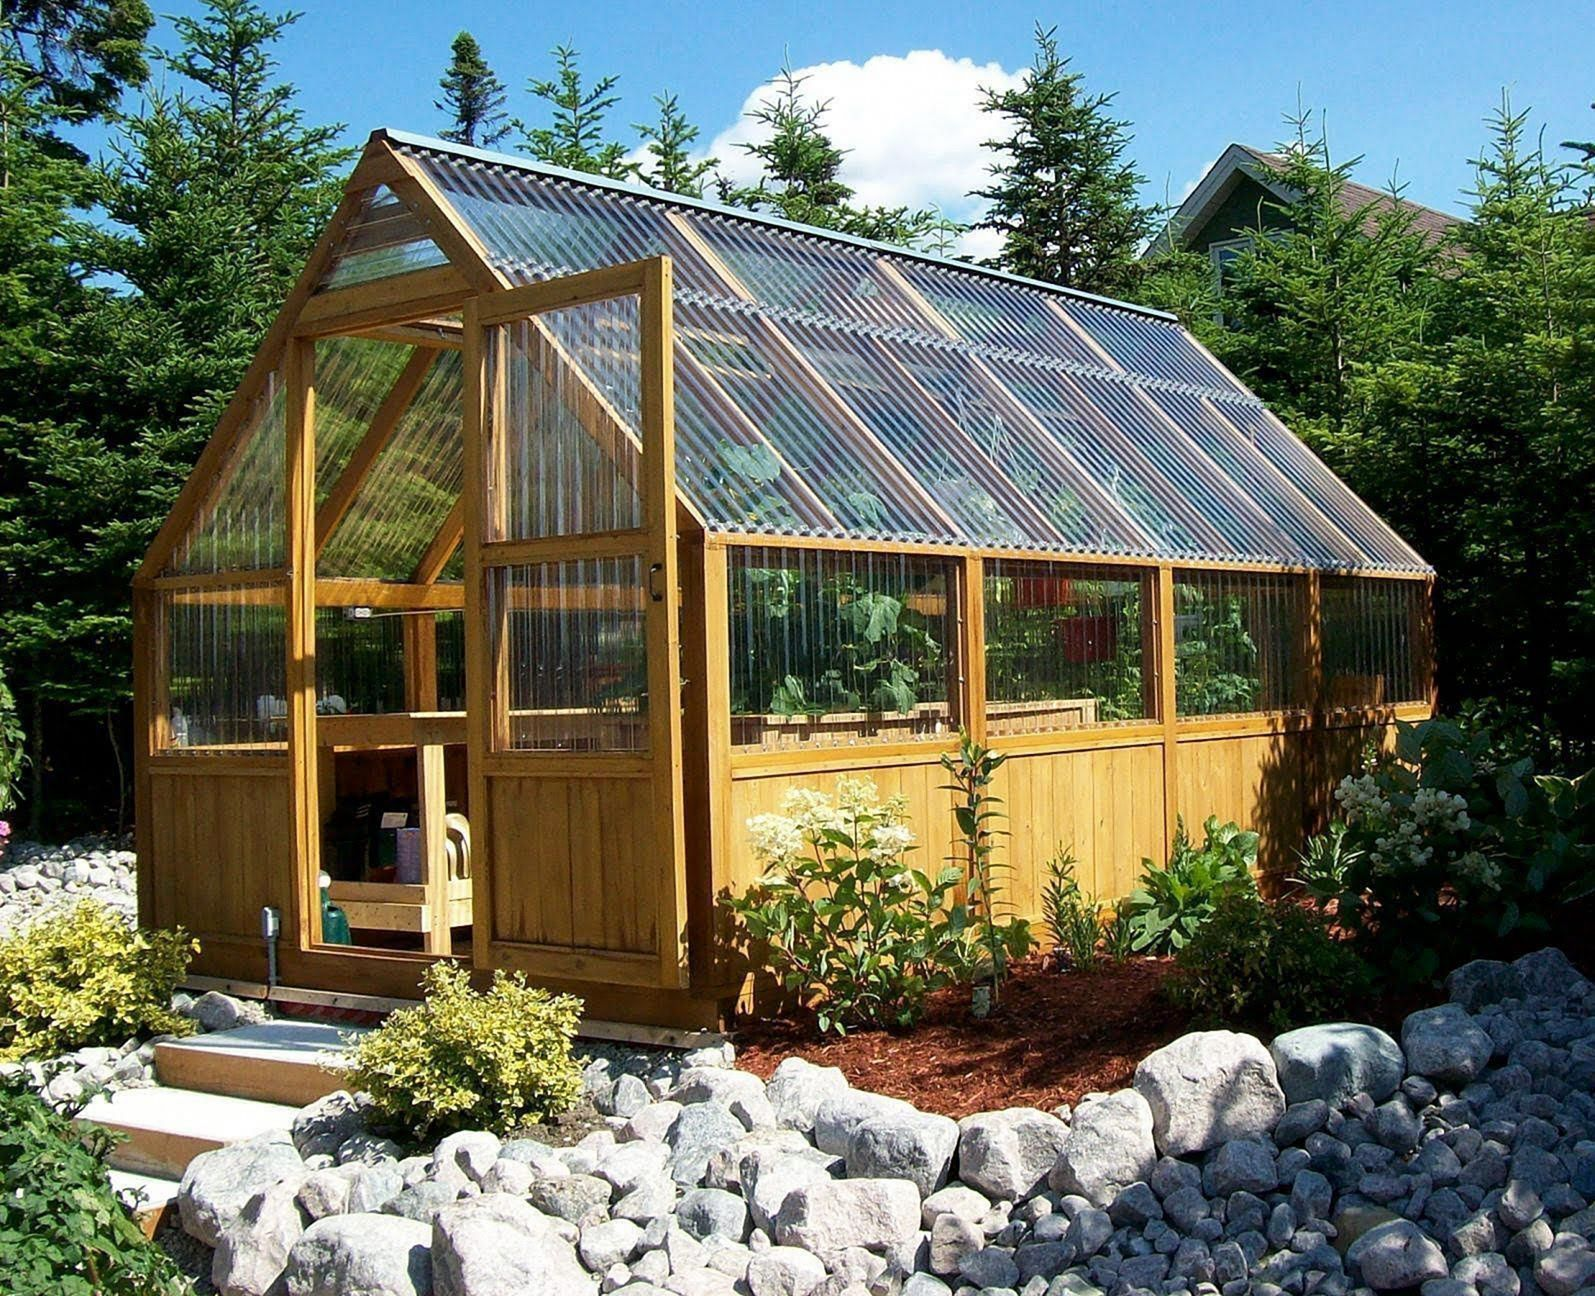 10 Interesting Diy Greenhouse Design Ideas You Can Make At Home Greenhouses Are Buildings Where Plants Are In 2020 Diy Greenhouse Build A Greenhouse Home Greenhouse